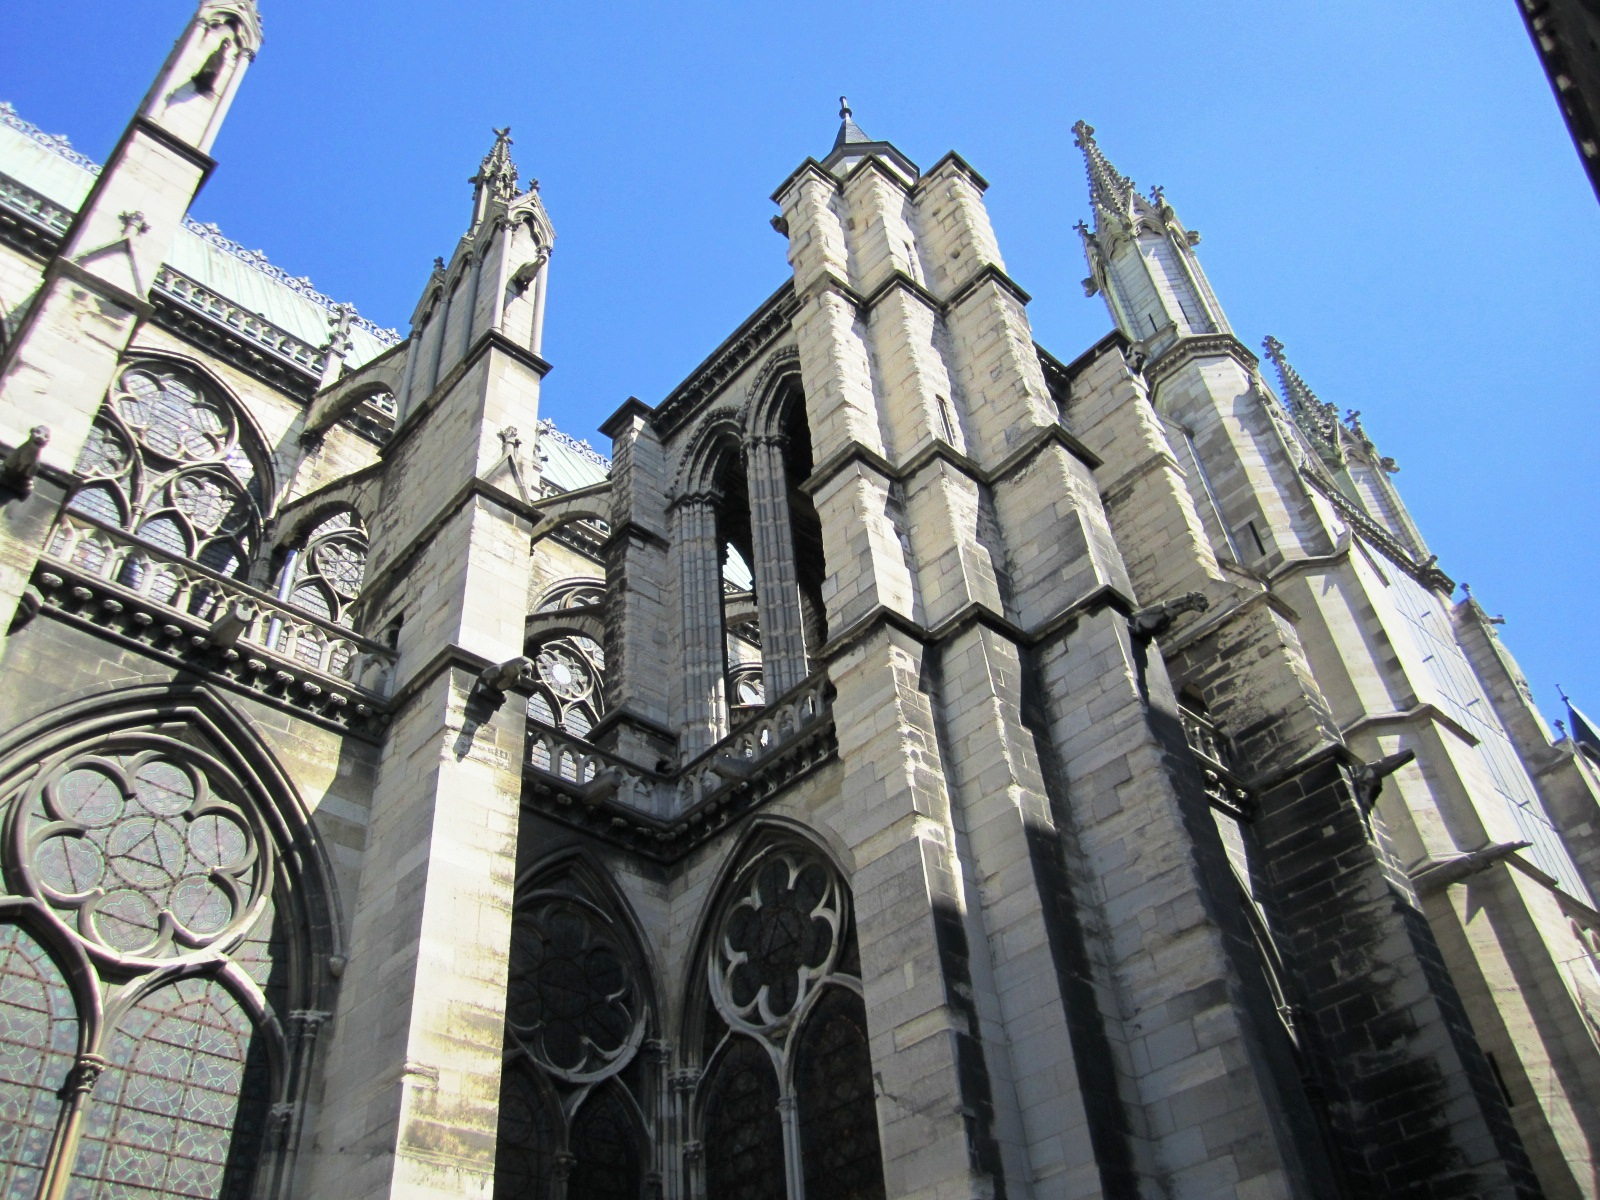 Beau St Denis Architecture #8: The Basilica Of St Denis Is An Architectural ...